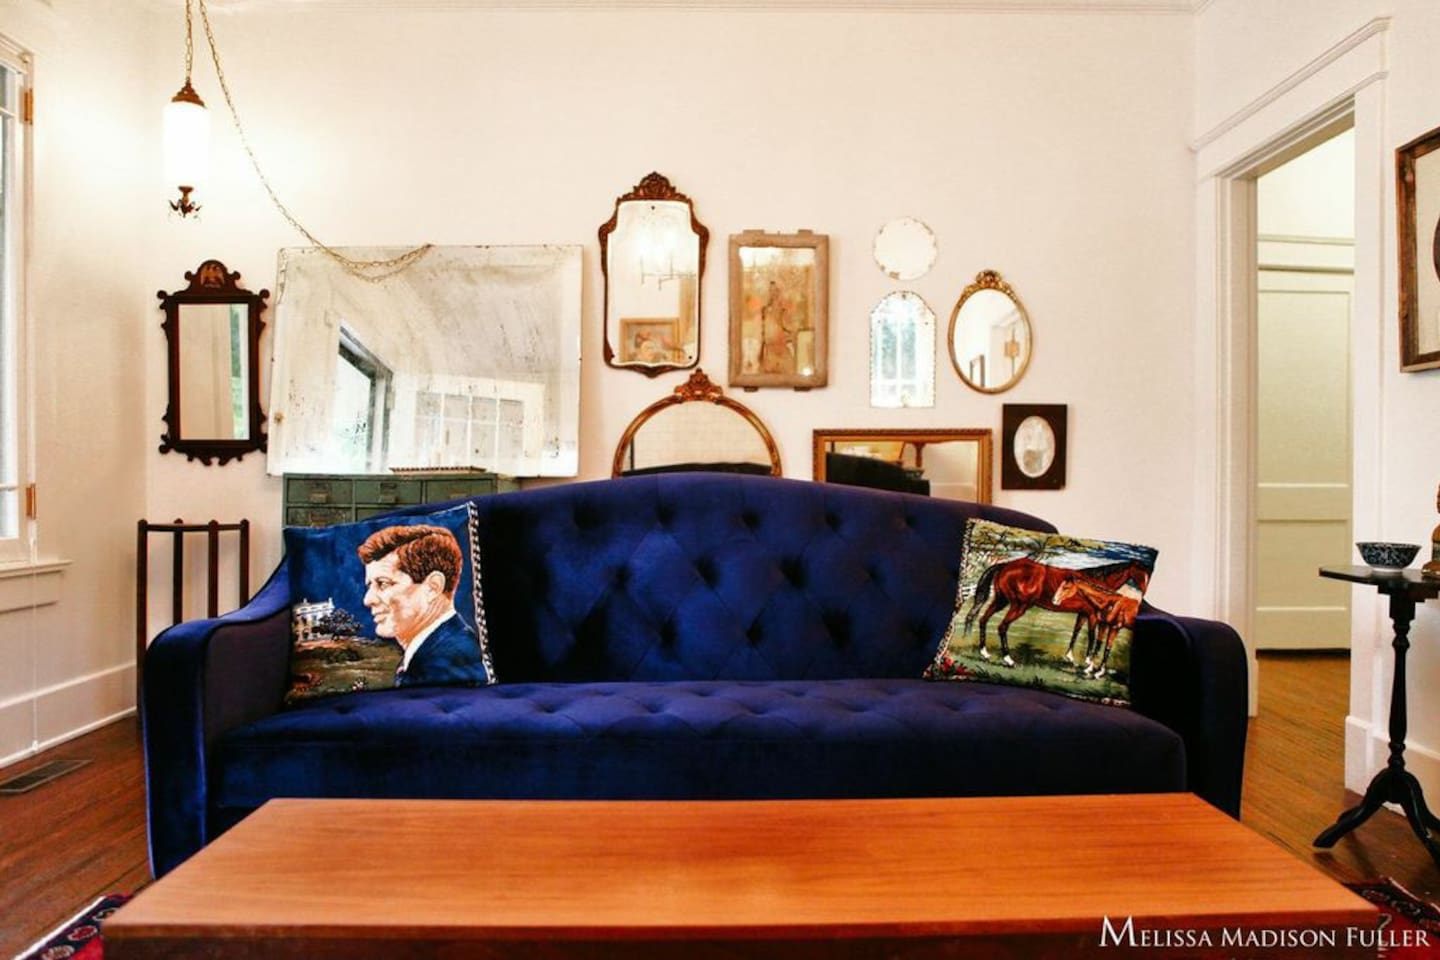 Living room with one of a kind vintage pieces. New velvet couch turns into a sleeper sofa if needed